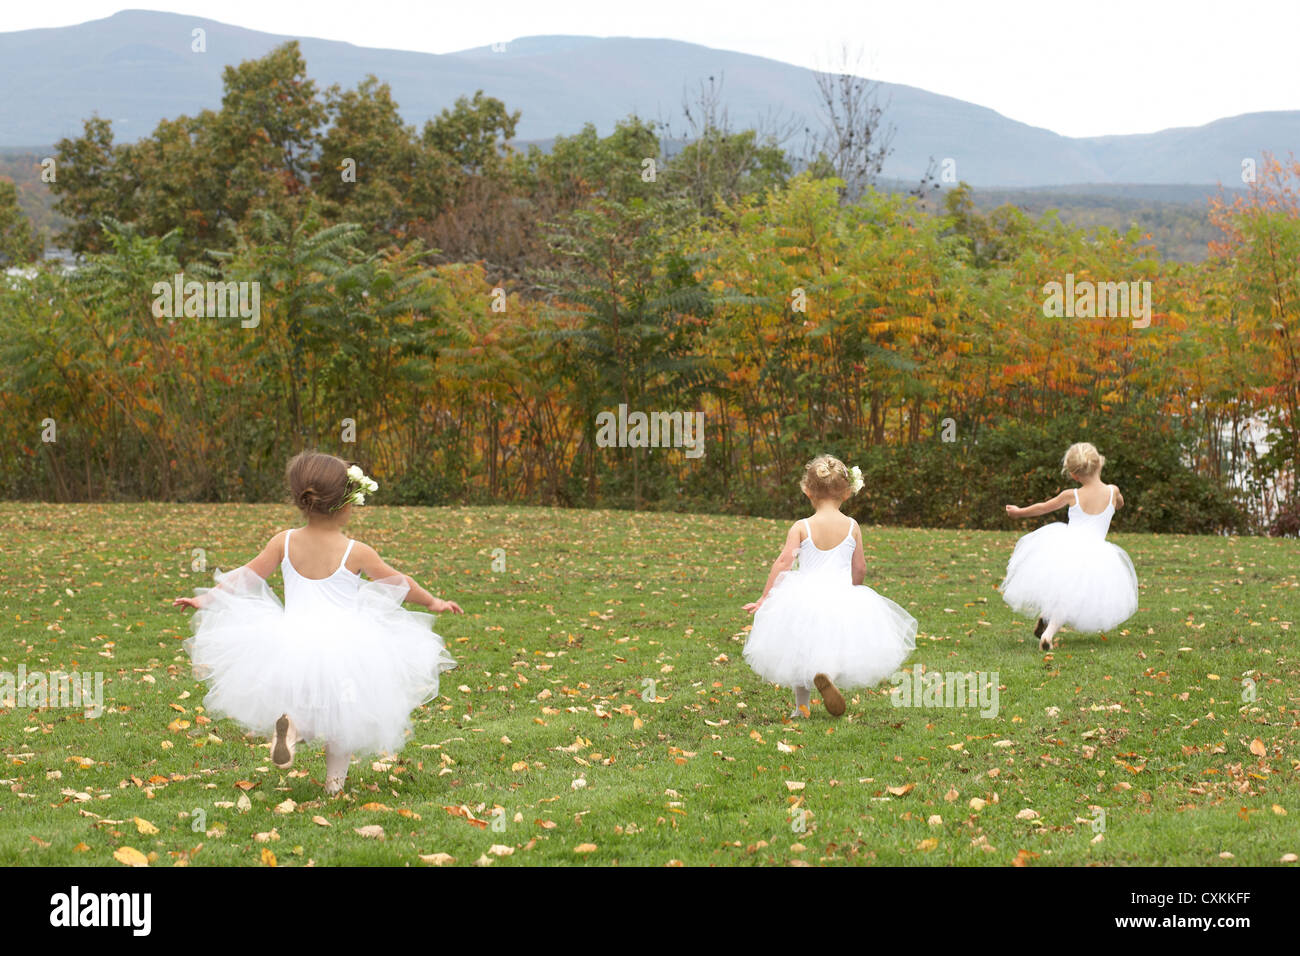 girls running in ballet costumes in a field - Stock Image